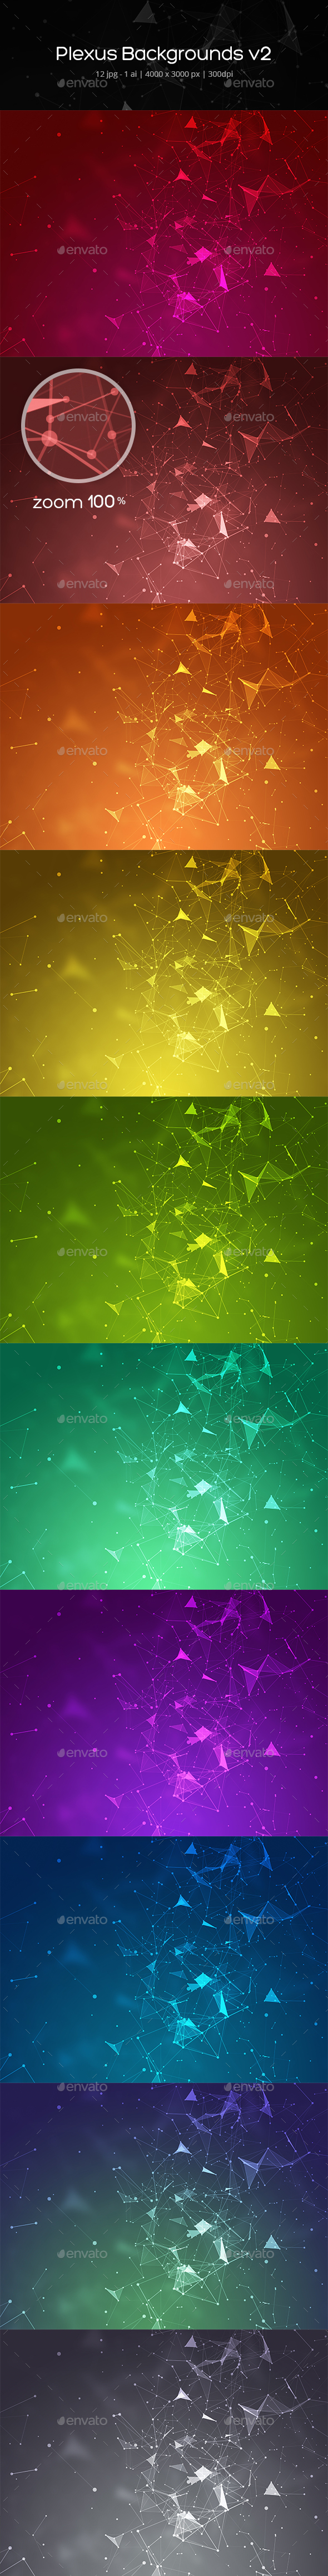 Plexus Backgrounds v2 - Abstract Backgrounds